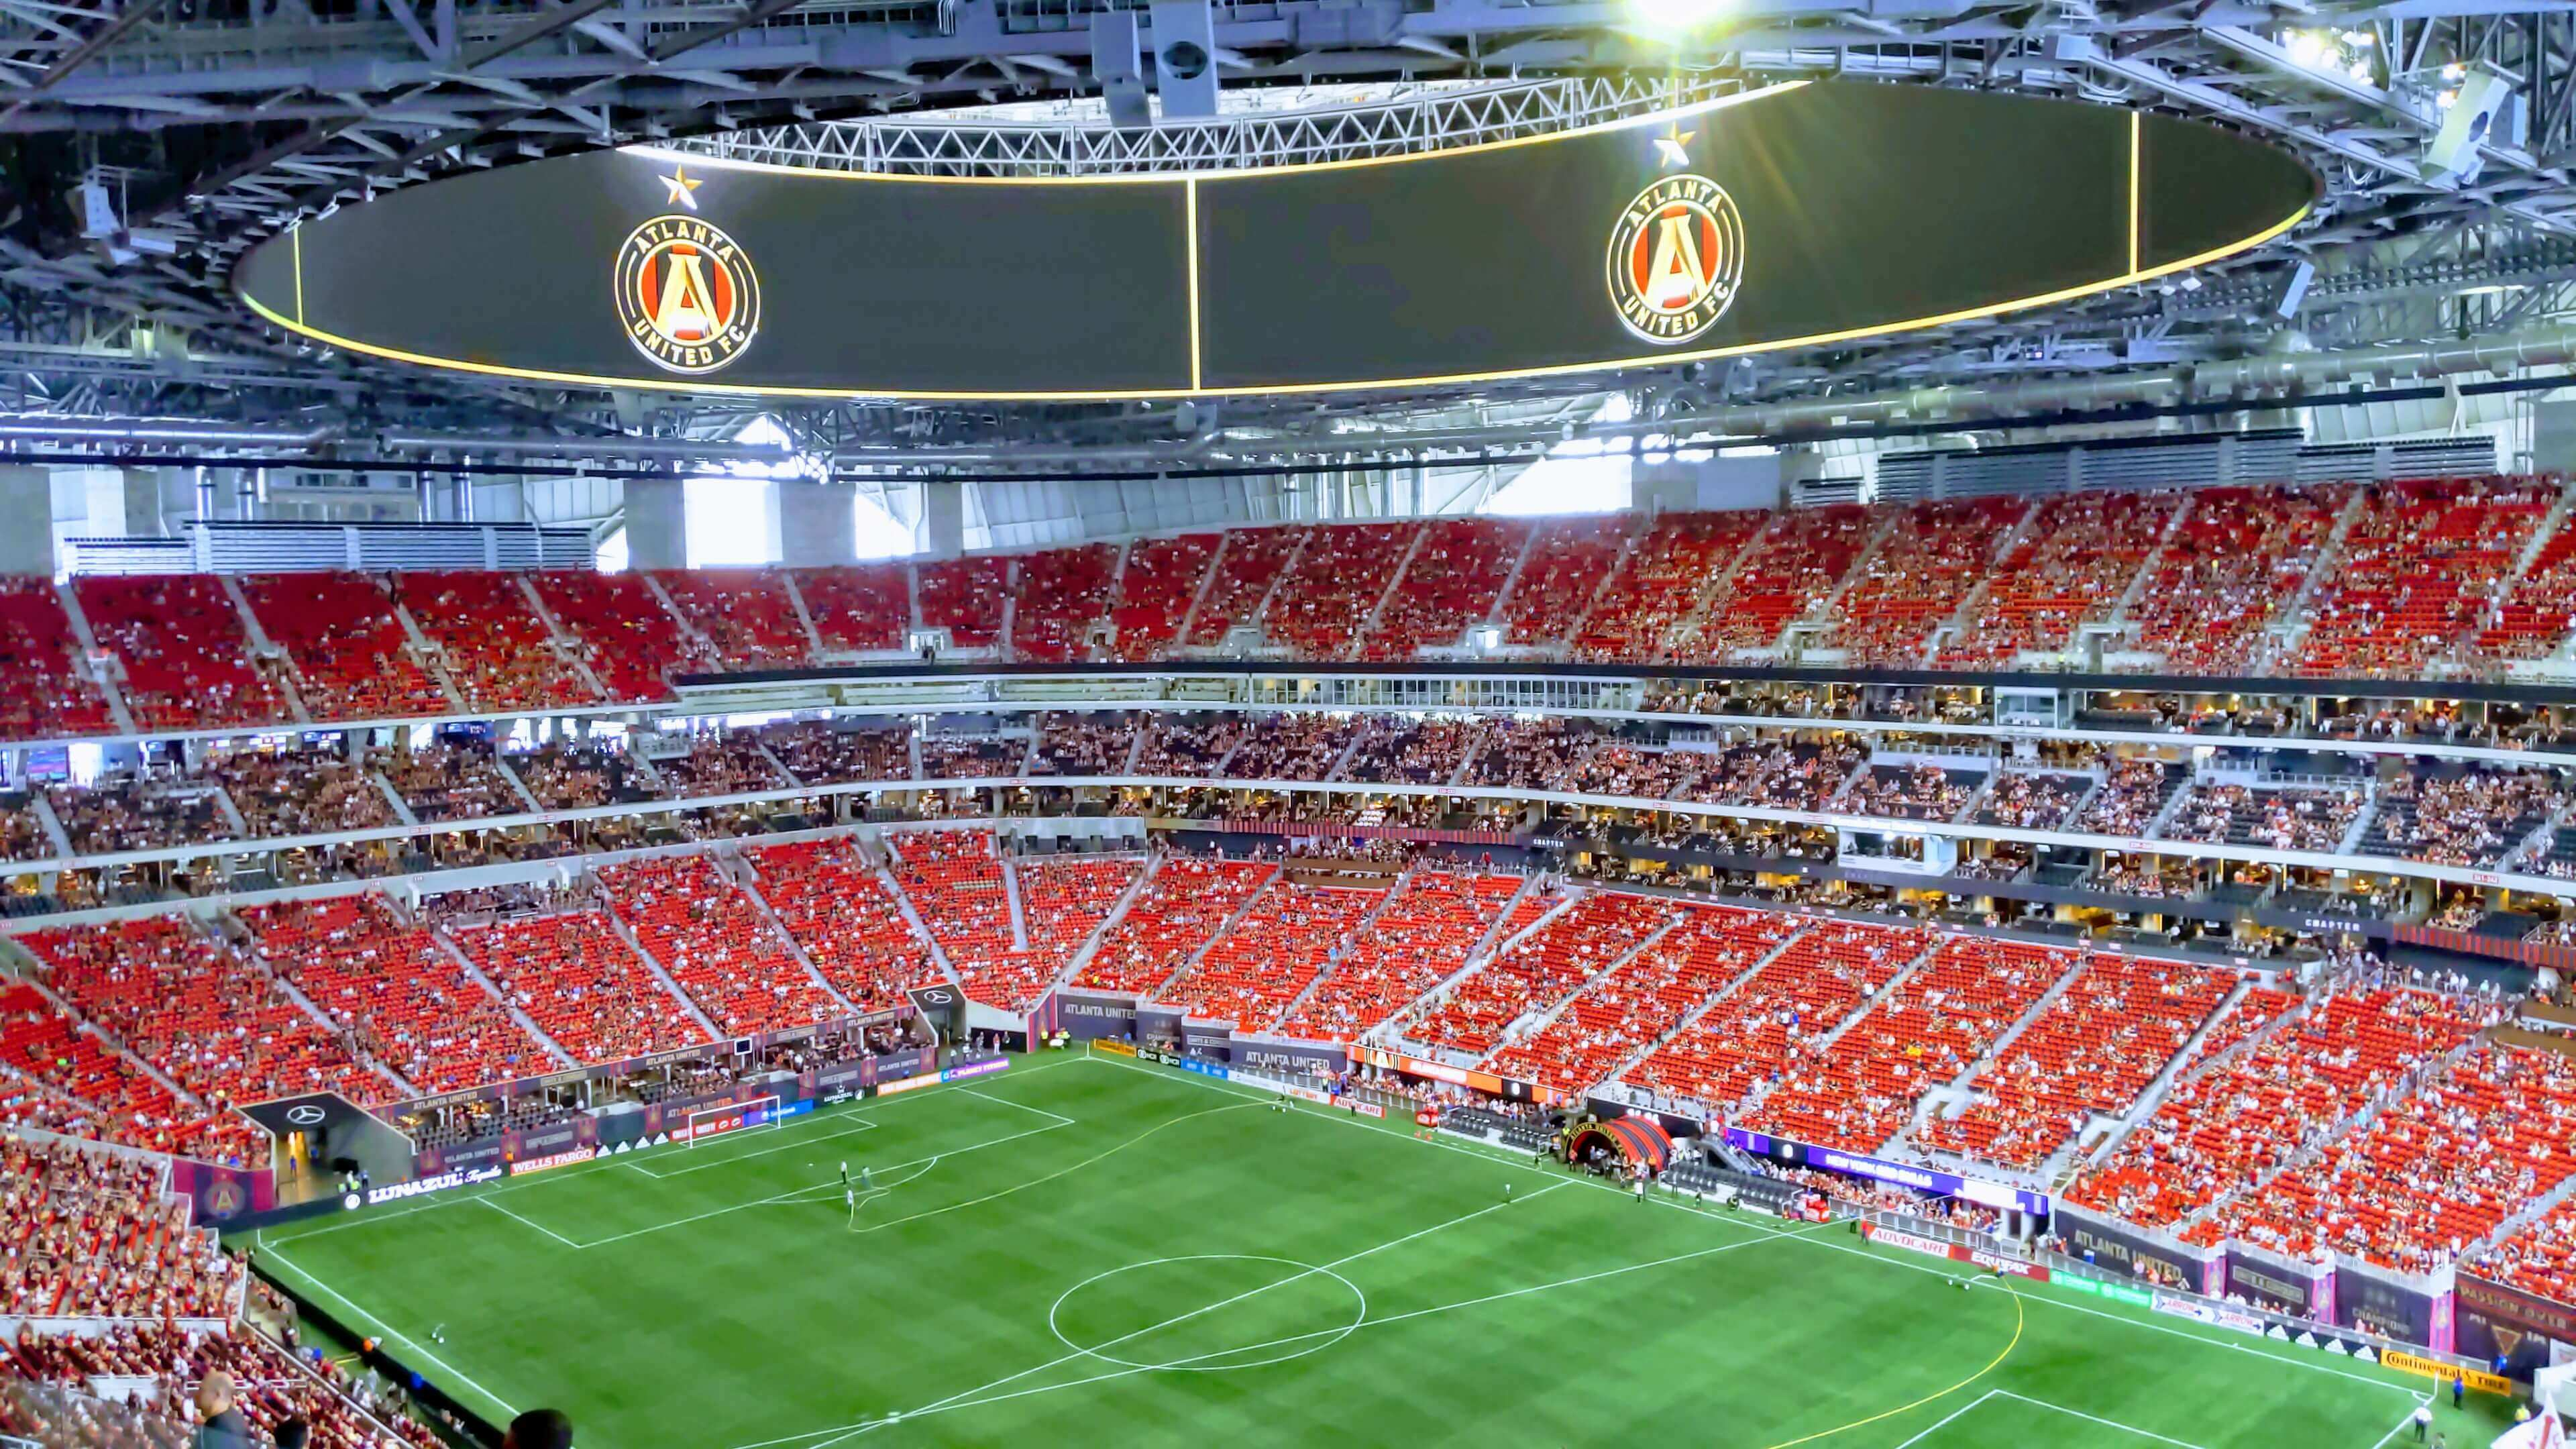 Atlanta united Mercedez Benz soccer stadium | FlyCheapAlways